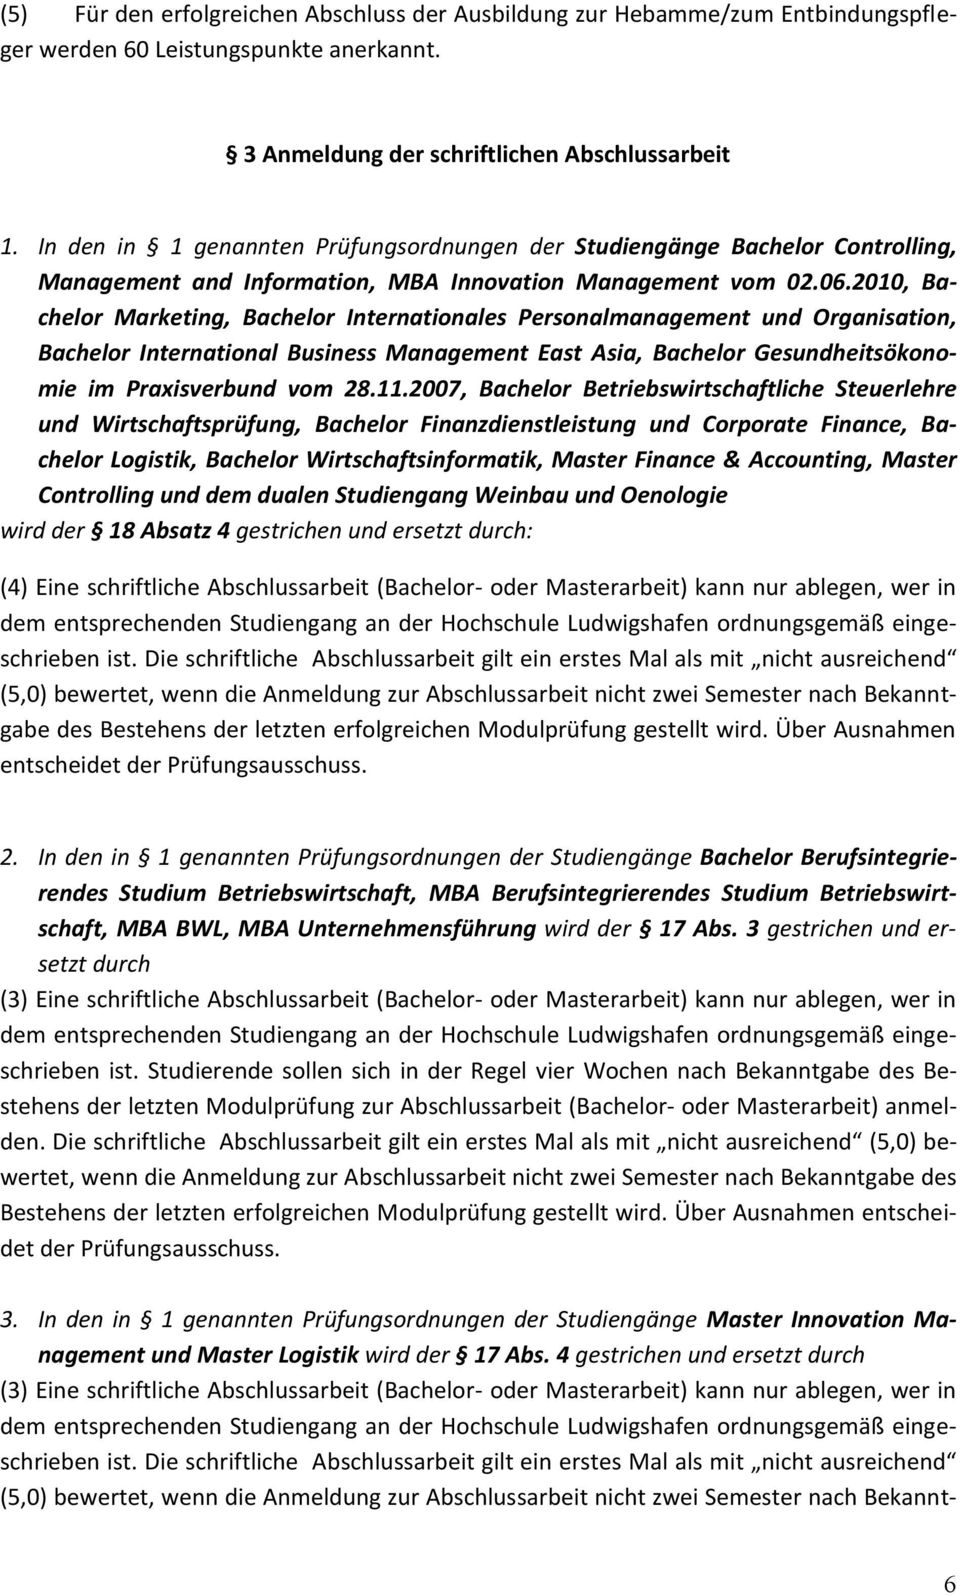 2010, Bachelor Marketing, Bachelor Internationales Personalmanagement und Organisation, Bachelor International Business Management East Asia, Bachelor Gesundheitsökonomie im Praxisverbund vom 28.11.